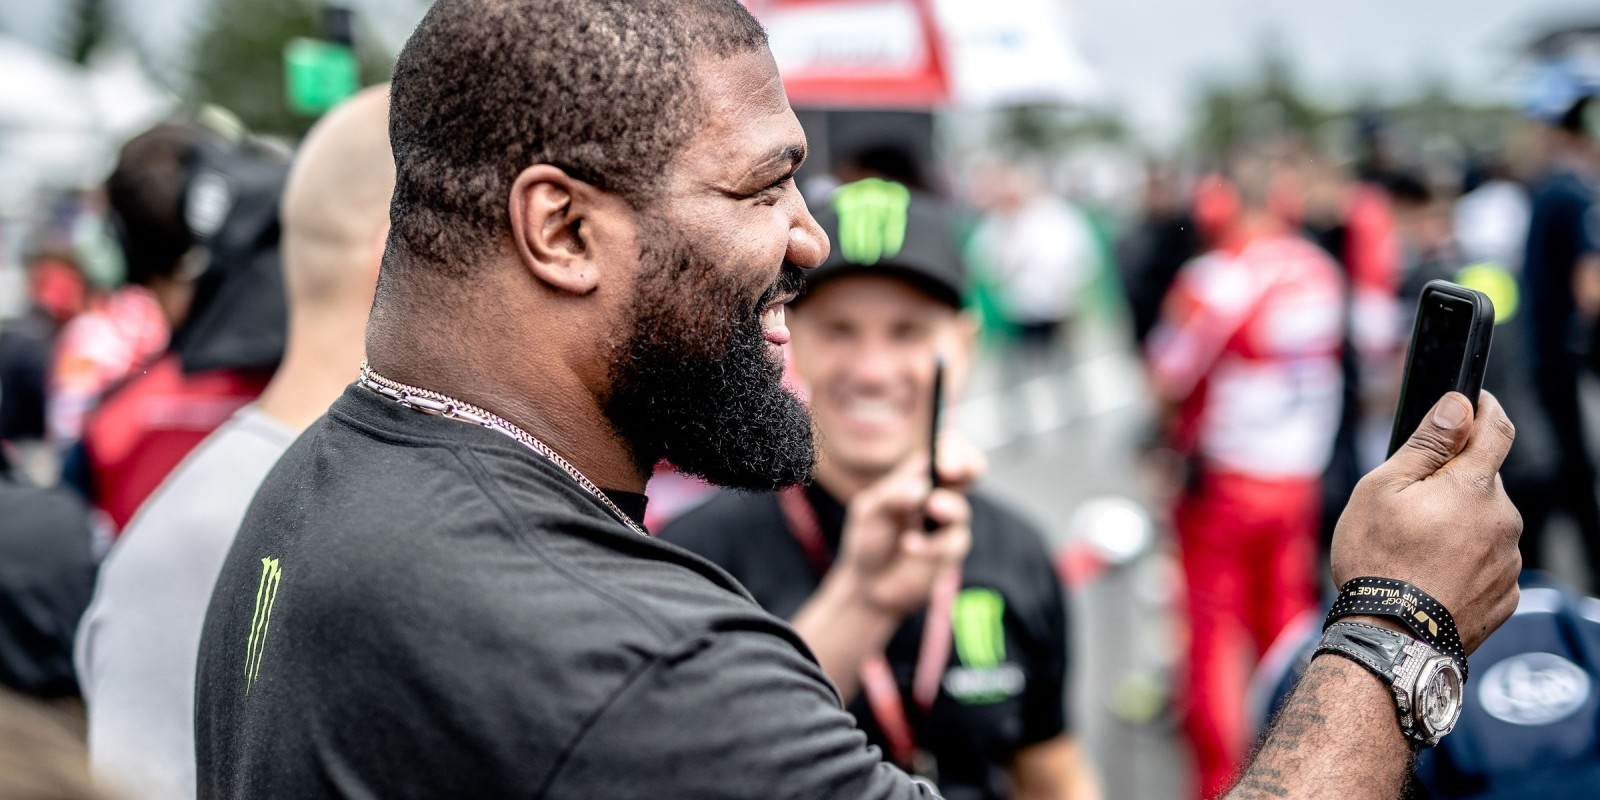 Quinton 'Rampage' Jackson at the 2017 Grand Prix of Czech Republic